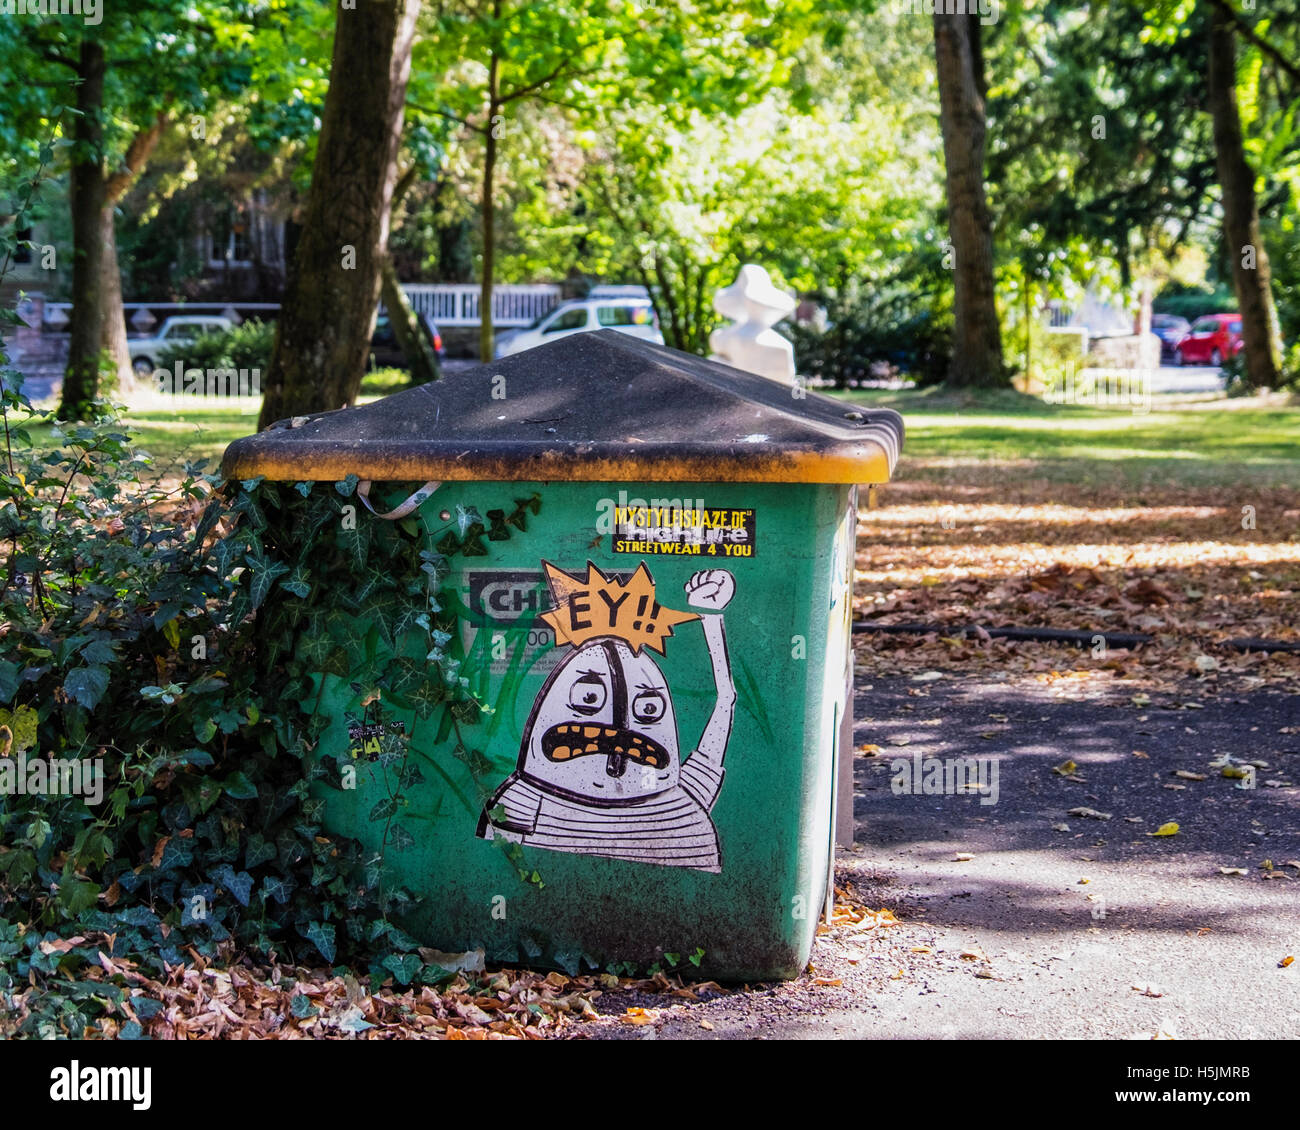 Darmstadt, Hesse, Germany. Graffiti on trash can in park Stock Photo